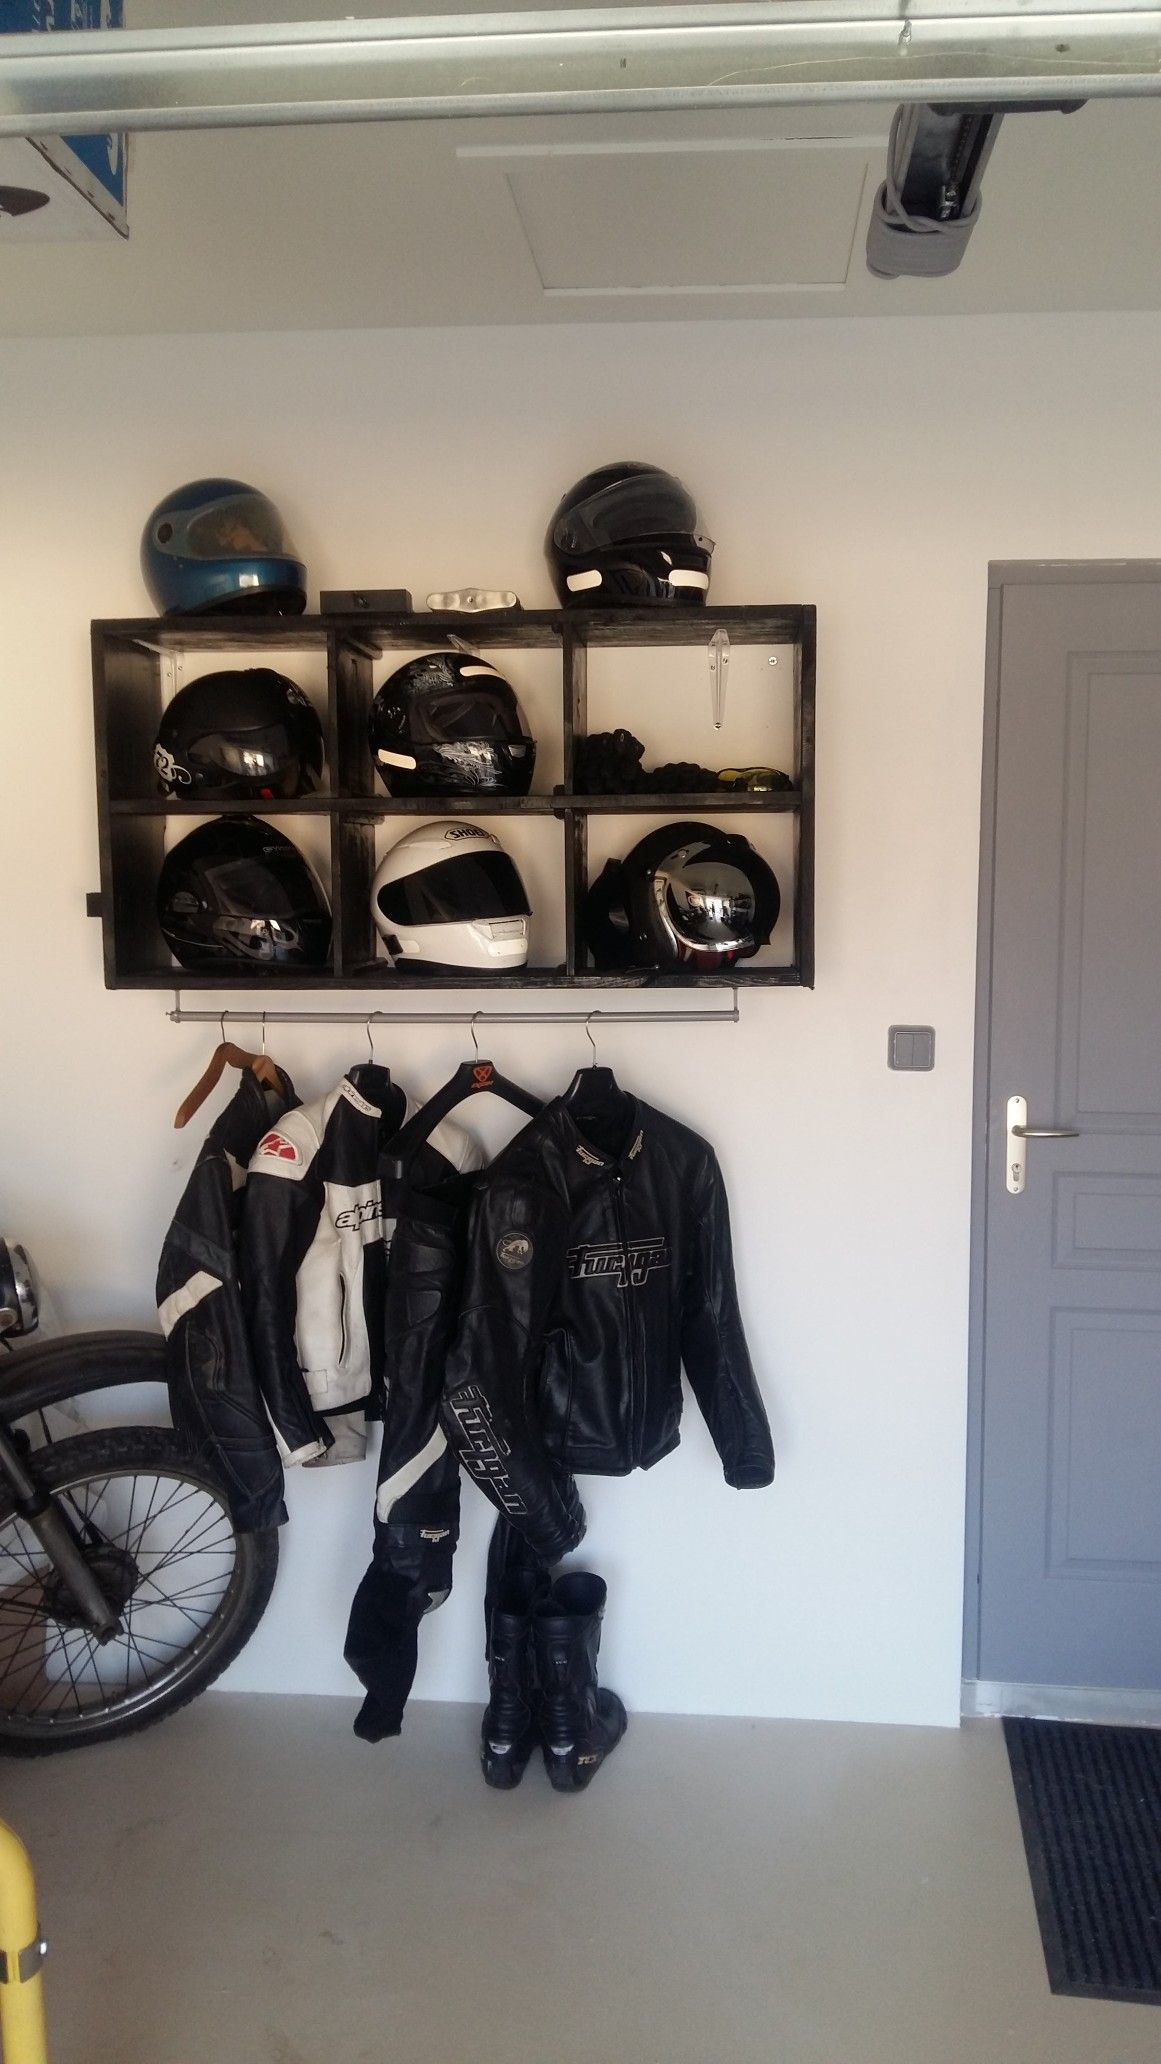 casque moto rangement berendezes pinterest casque moto et rangement. Black Bedroom Furniture Sets. Home Design Ideas